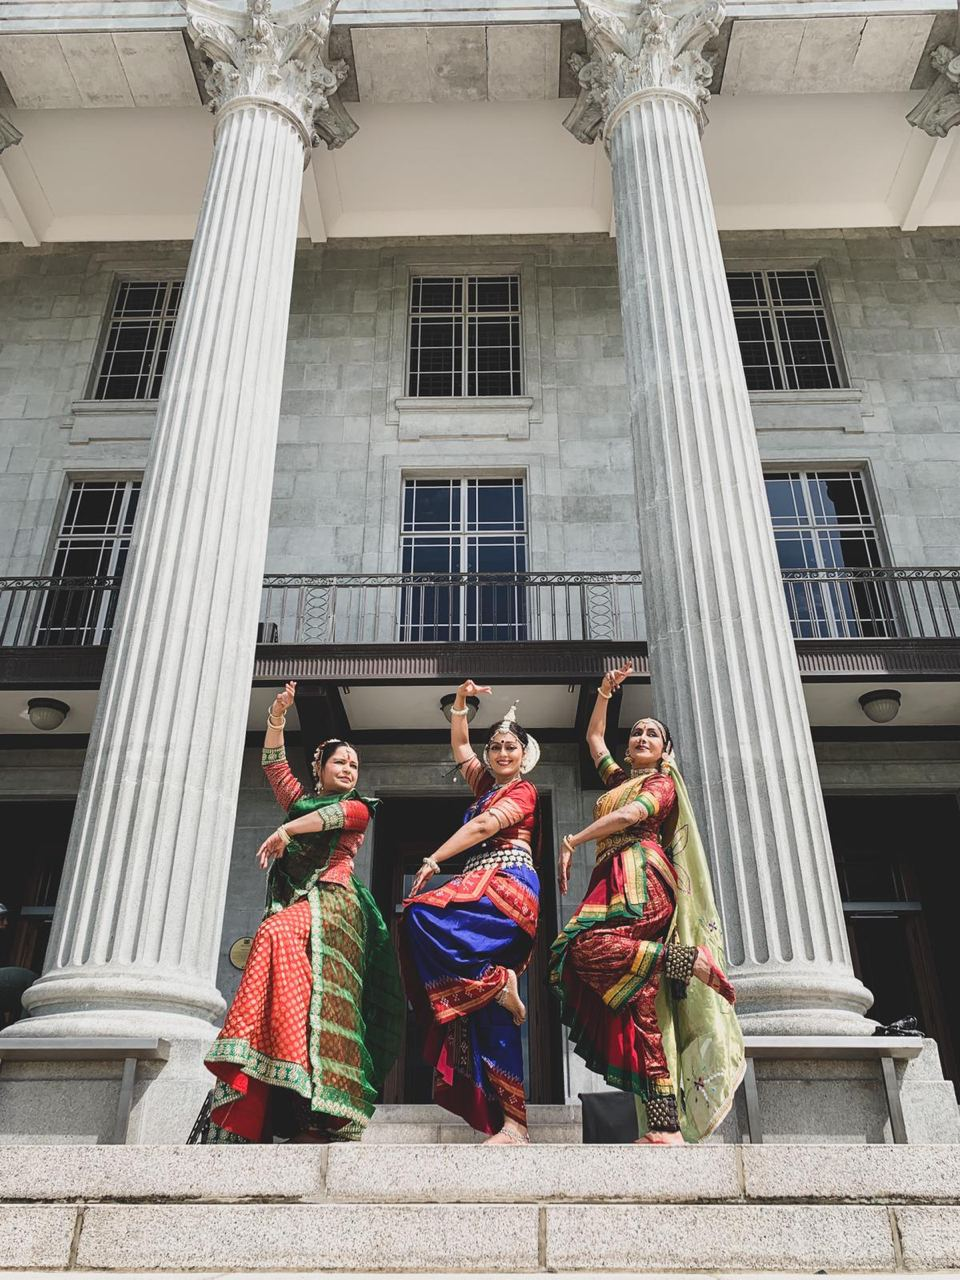 Motherhood presents Kaikeyi, Kausalya and Sumitra - the three wives of King Dasharatha and the mothers of Rama and his brothers through Kathak, Oddisi and Kuchipudi by Pallavi Sharma, Chitra Shankar and Shanta Ratii. Photo Courtesy: IHC